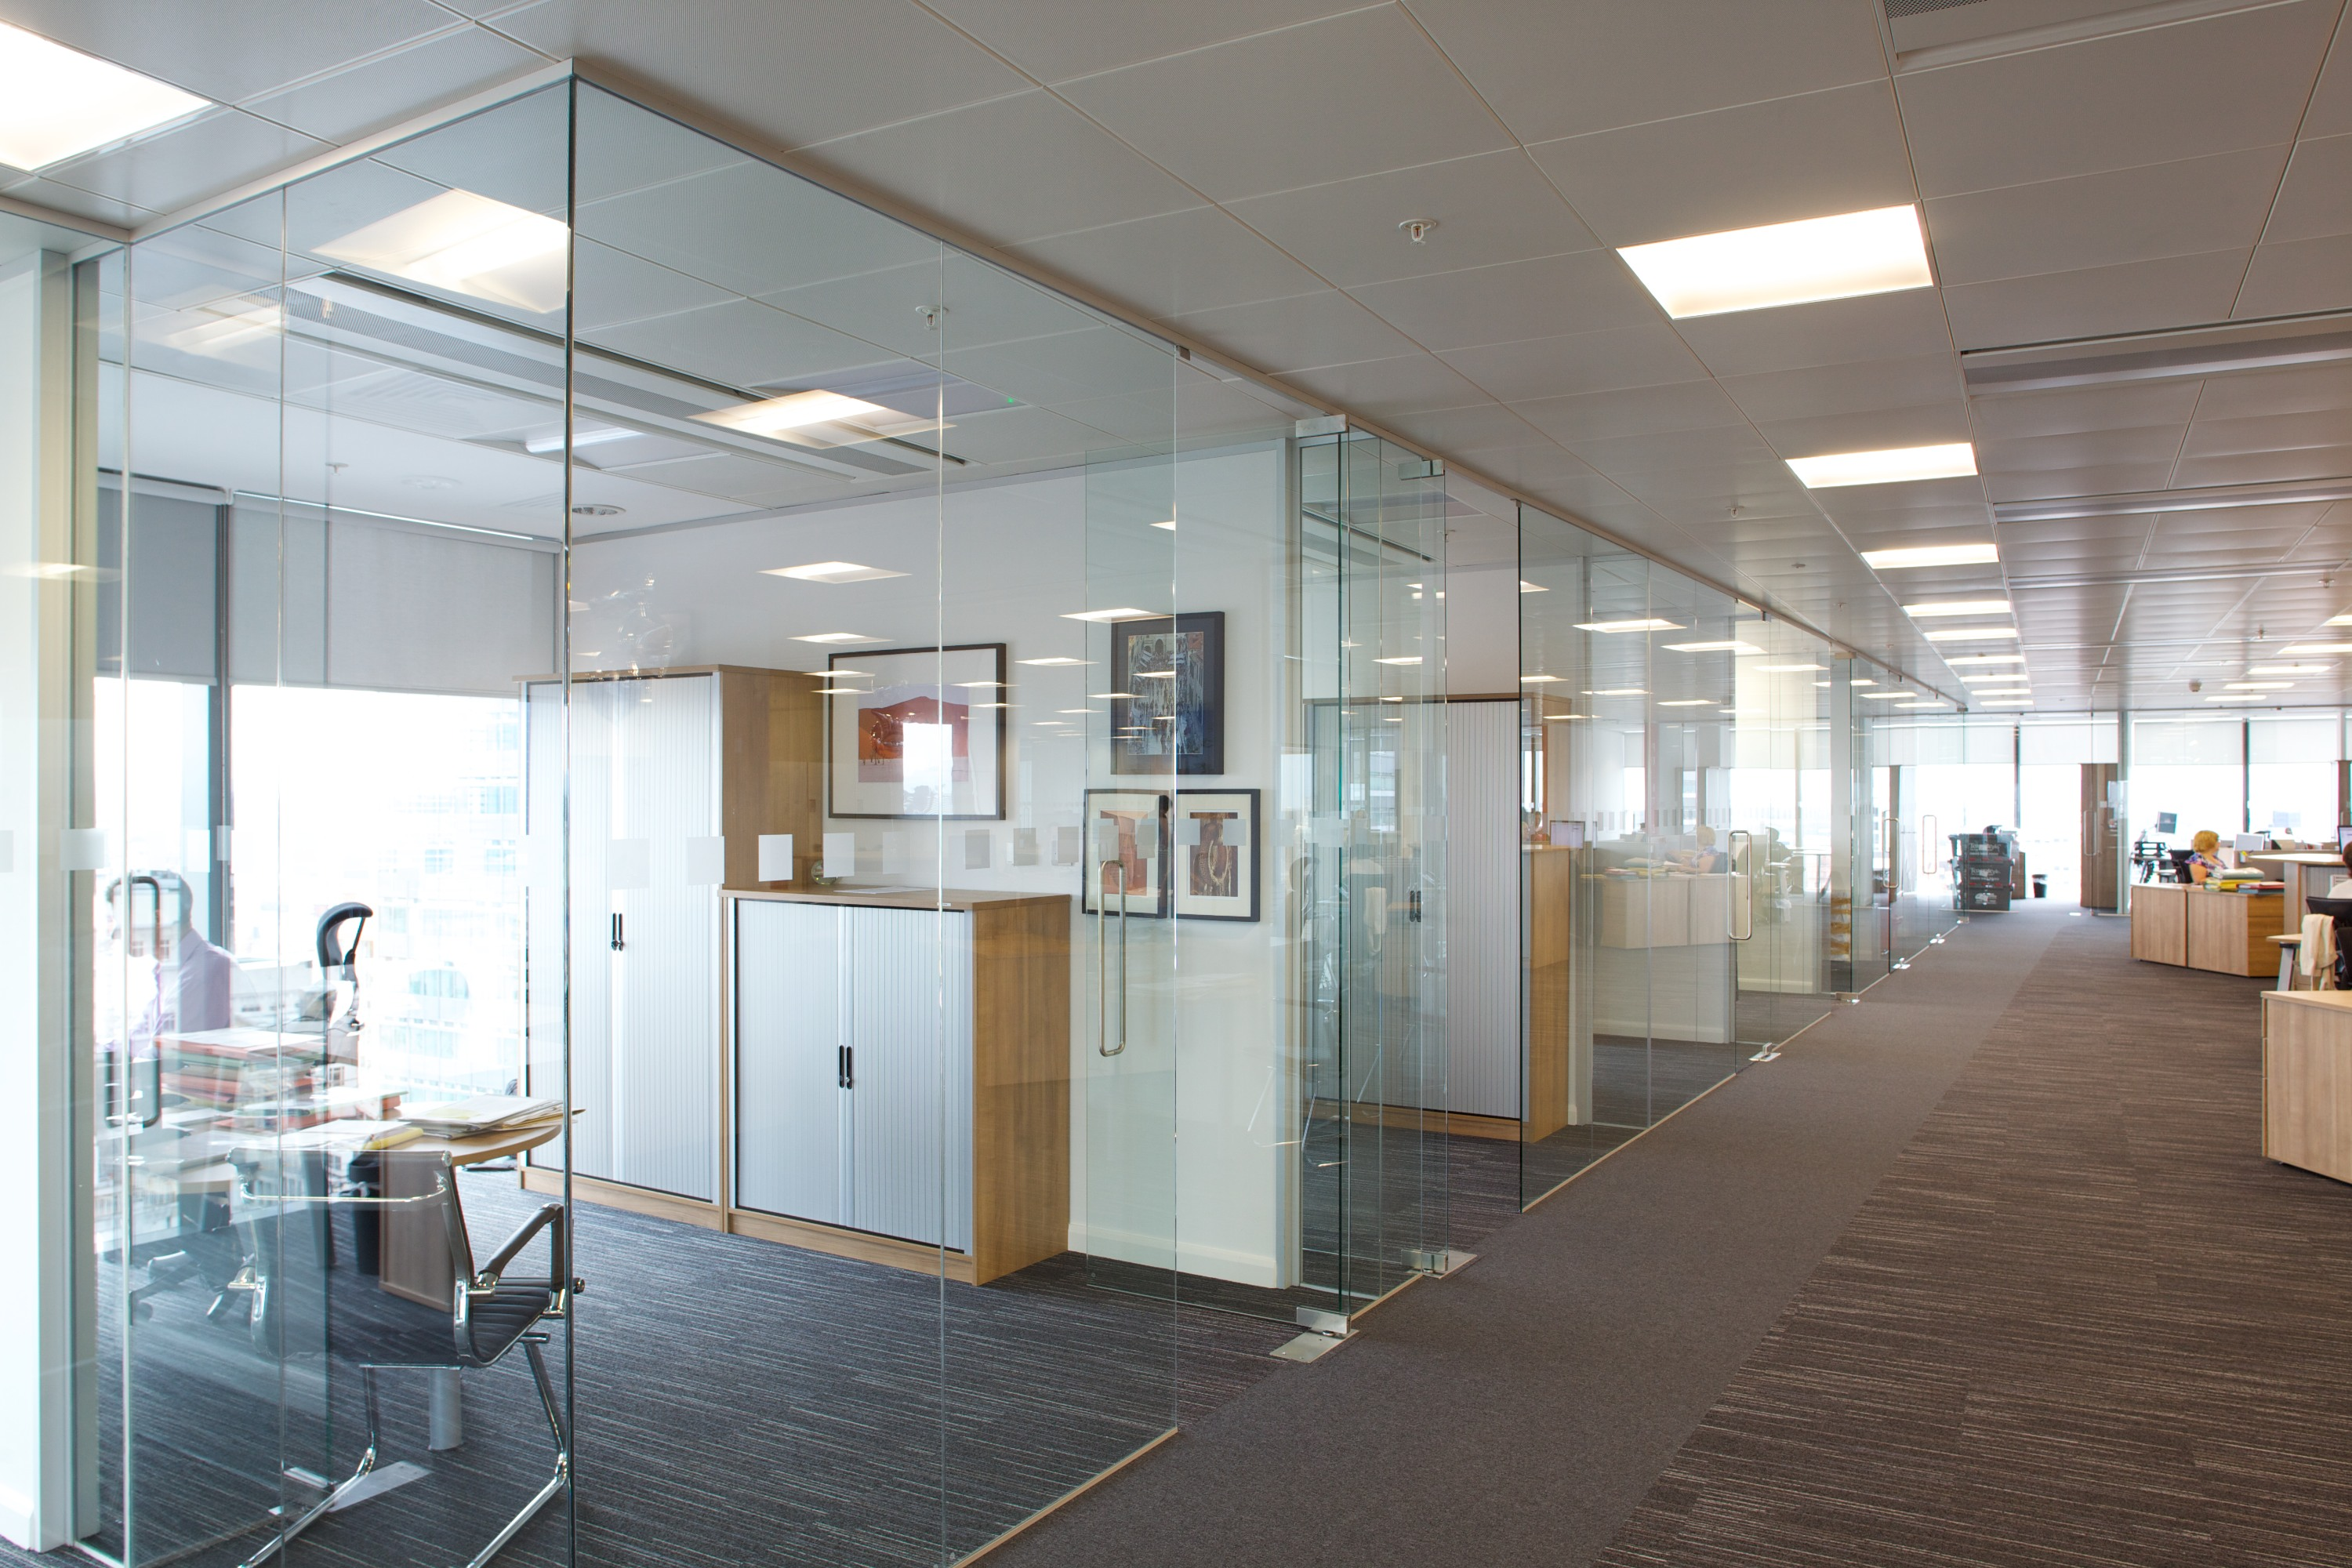 seamless glass partitioning transforms whitespace